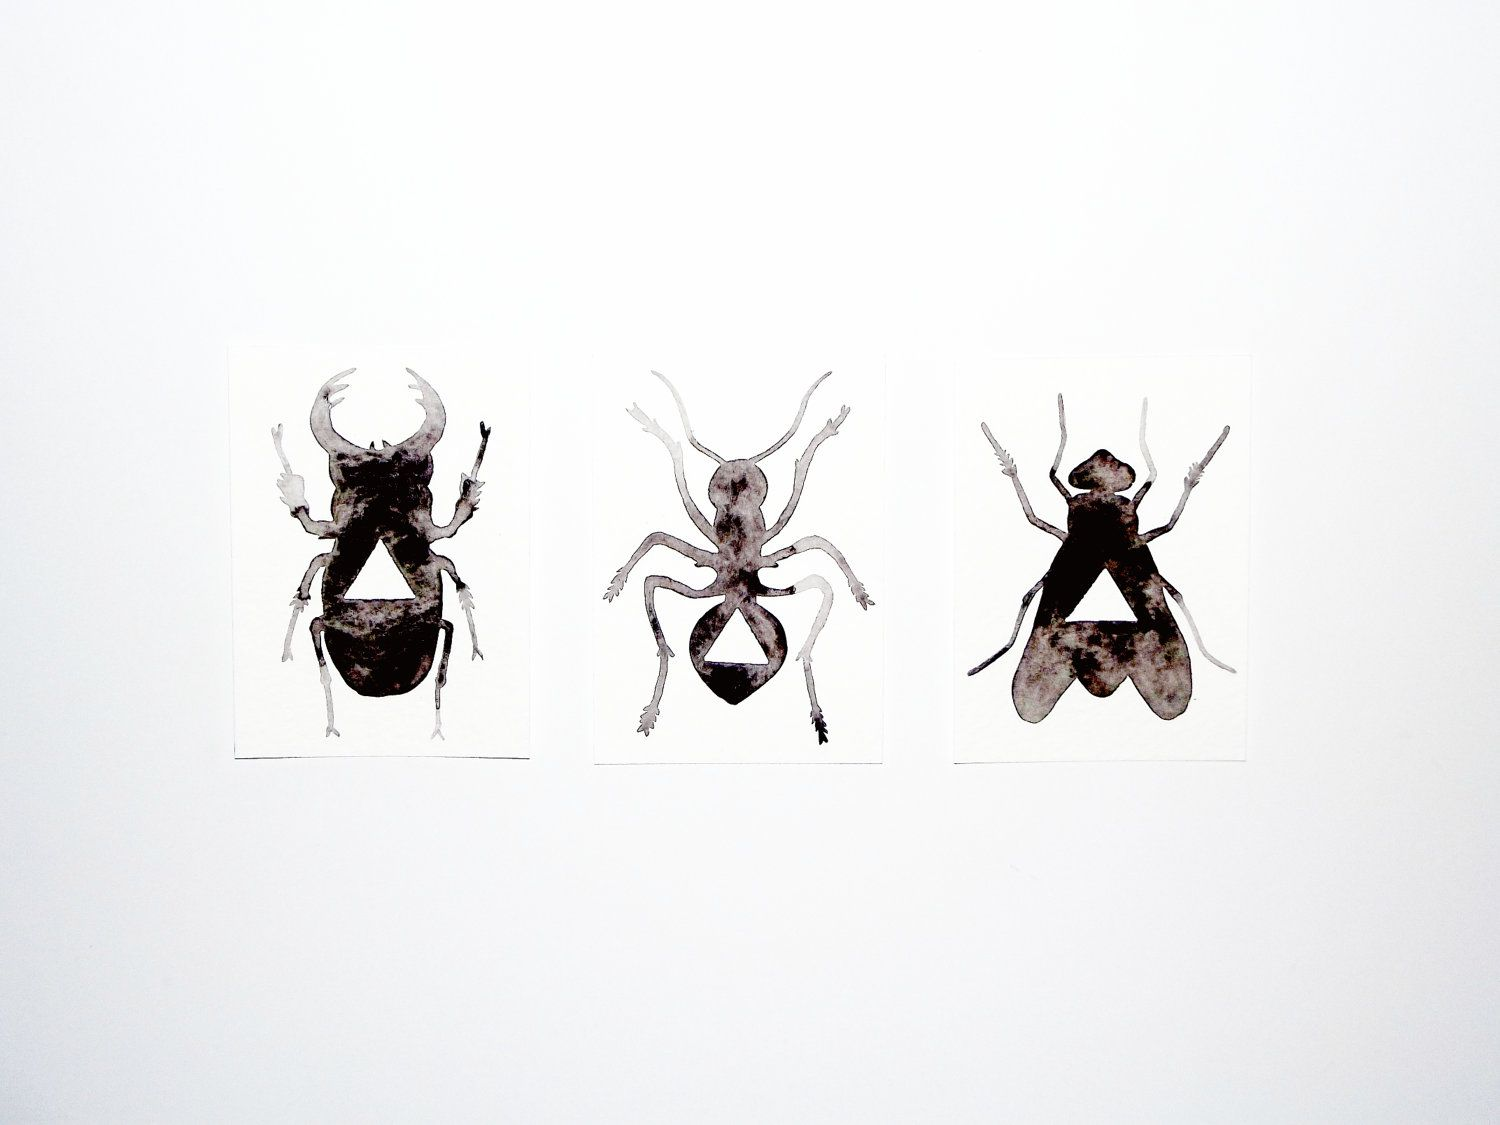 geometric insect Springerlink search home contact us construct the graph for the insect geometric insect pose estimation by graph based geometric models and random forests.